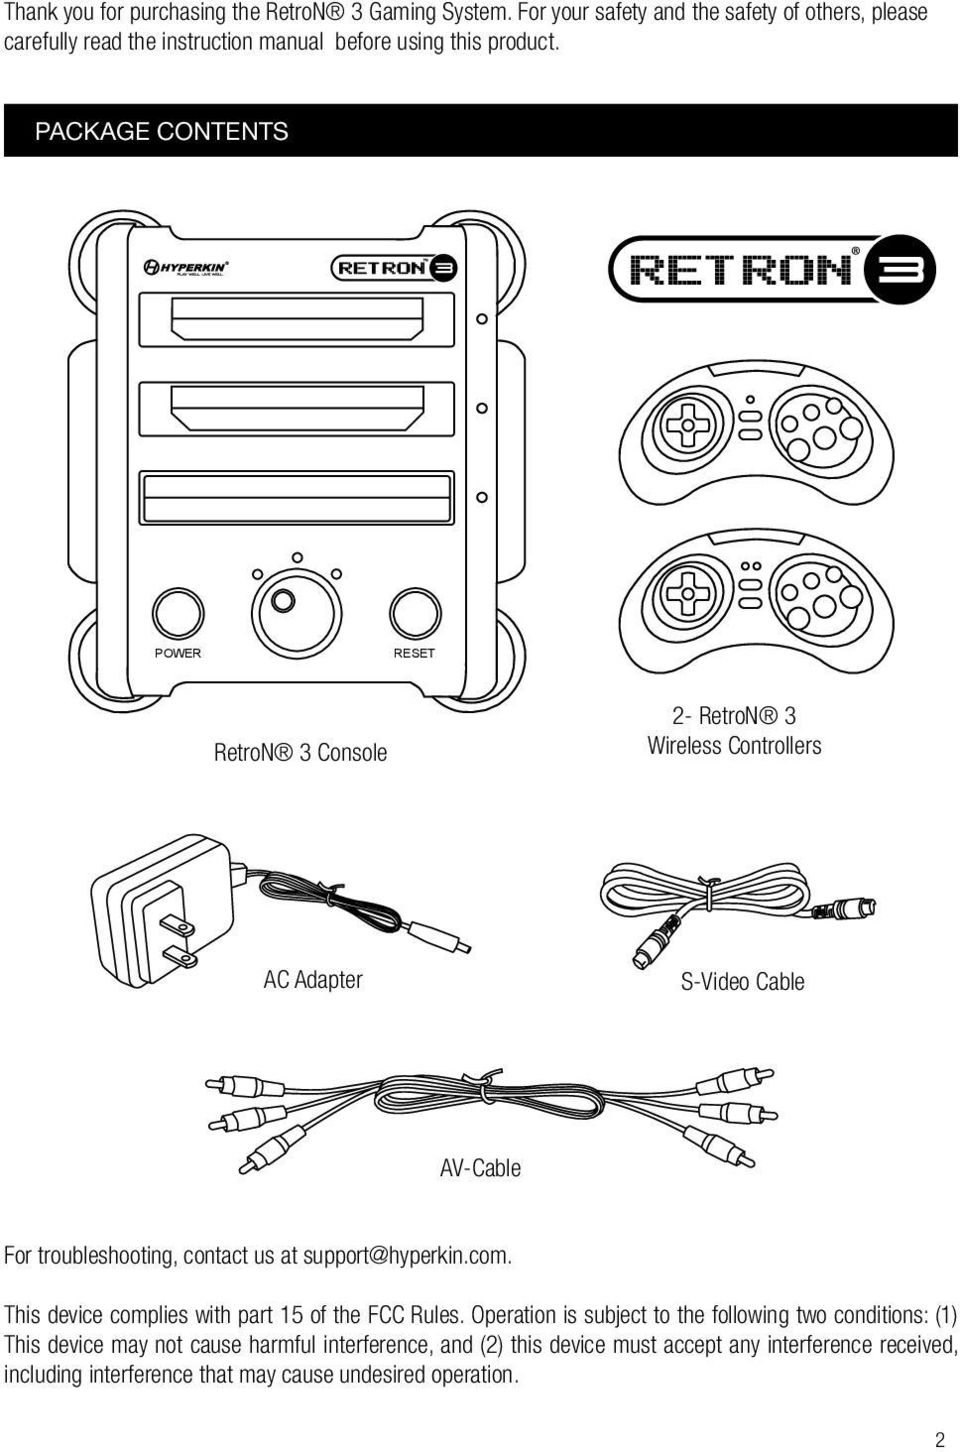 PACKAGE ContentS POWER RESET RetroN 3 Console 2- RetroN 3 Wireless Controllers AC Adapter S-Video Cable AV-Cable For troubleshooting, contact us at